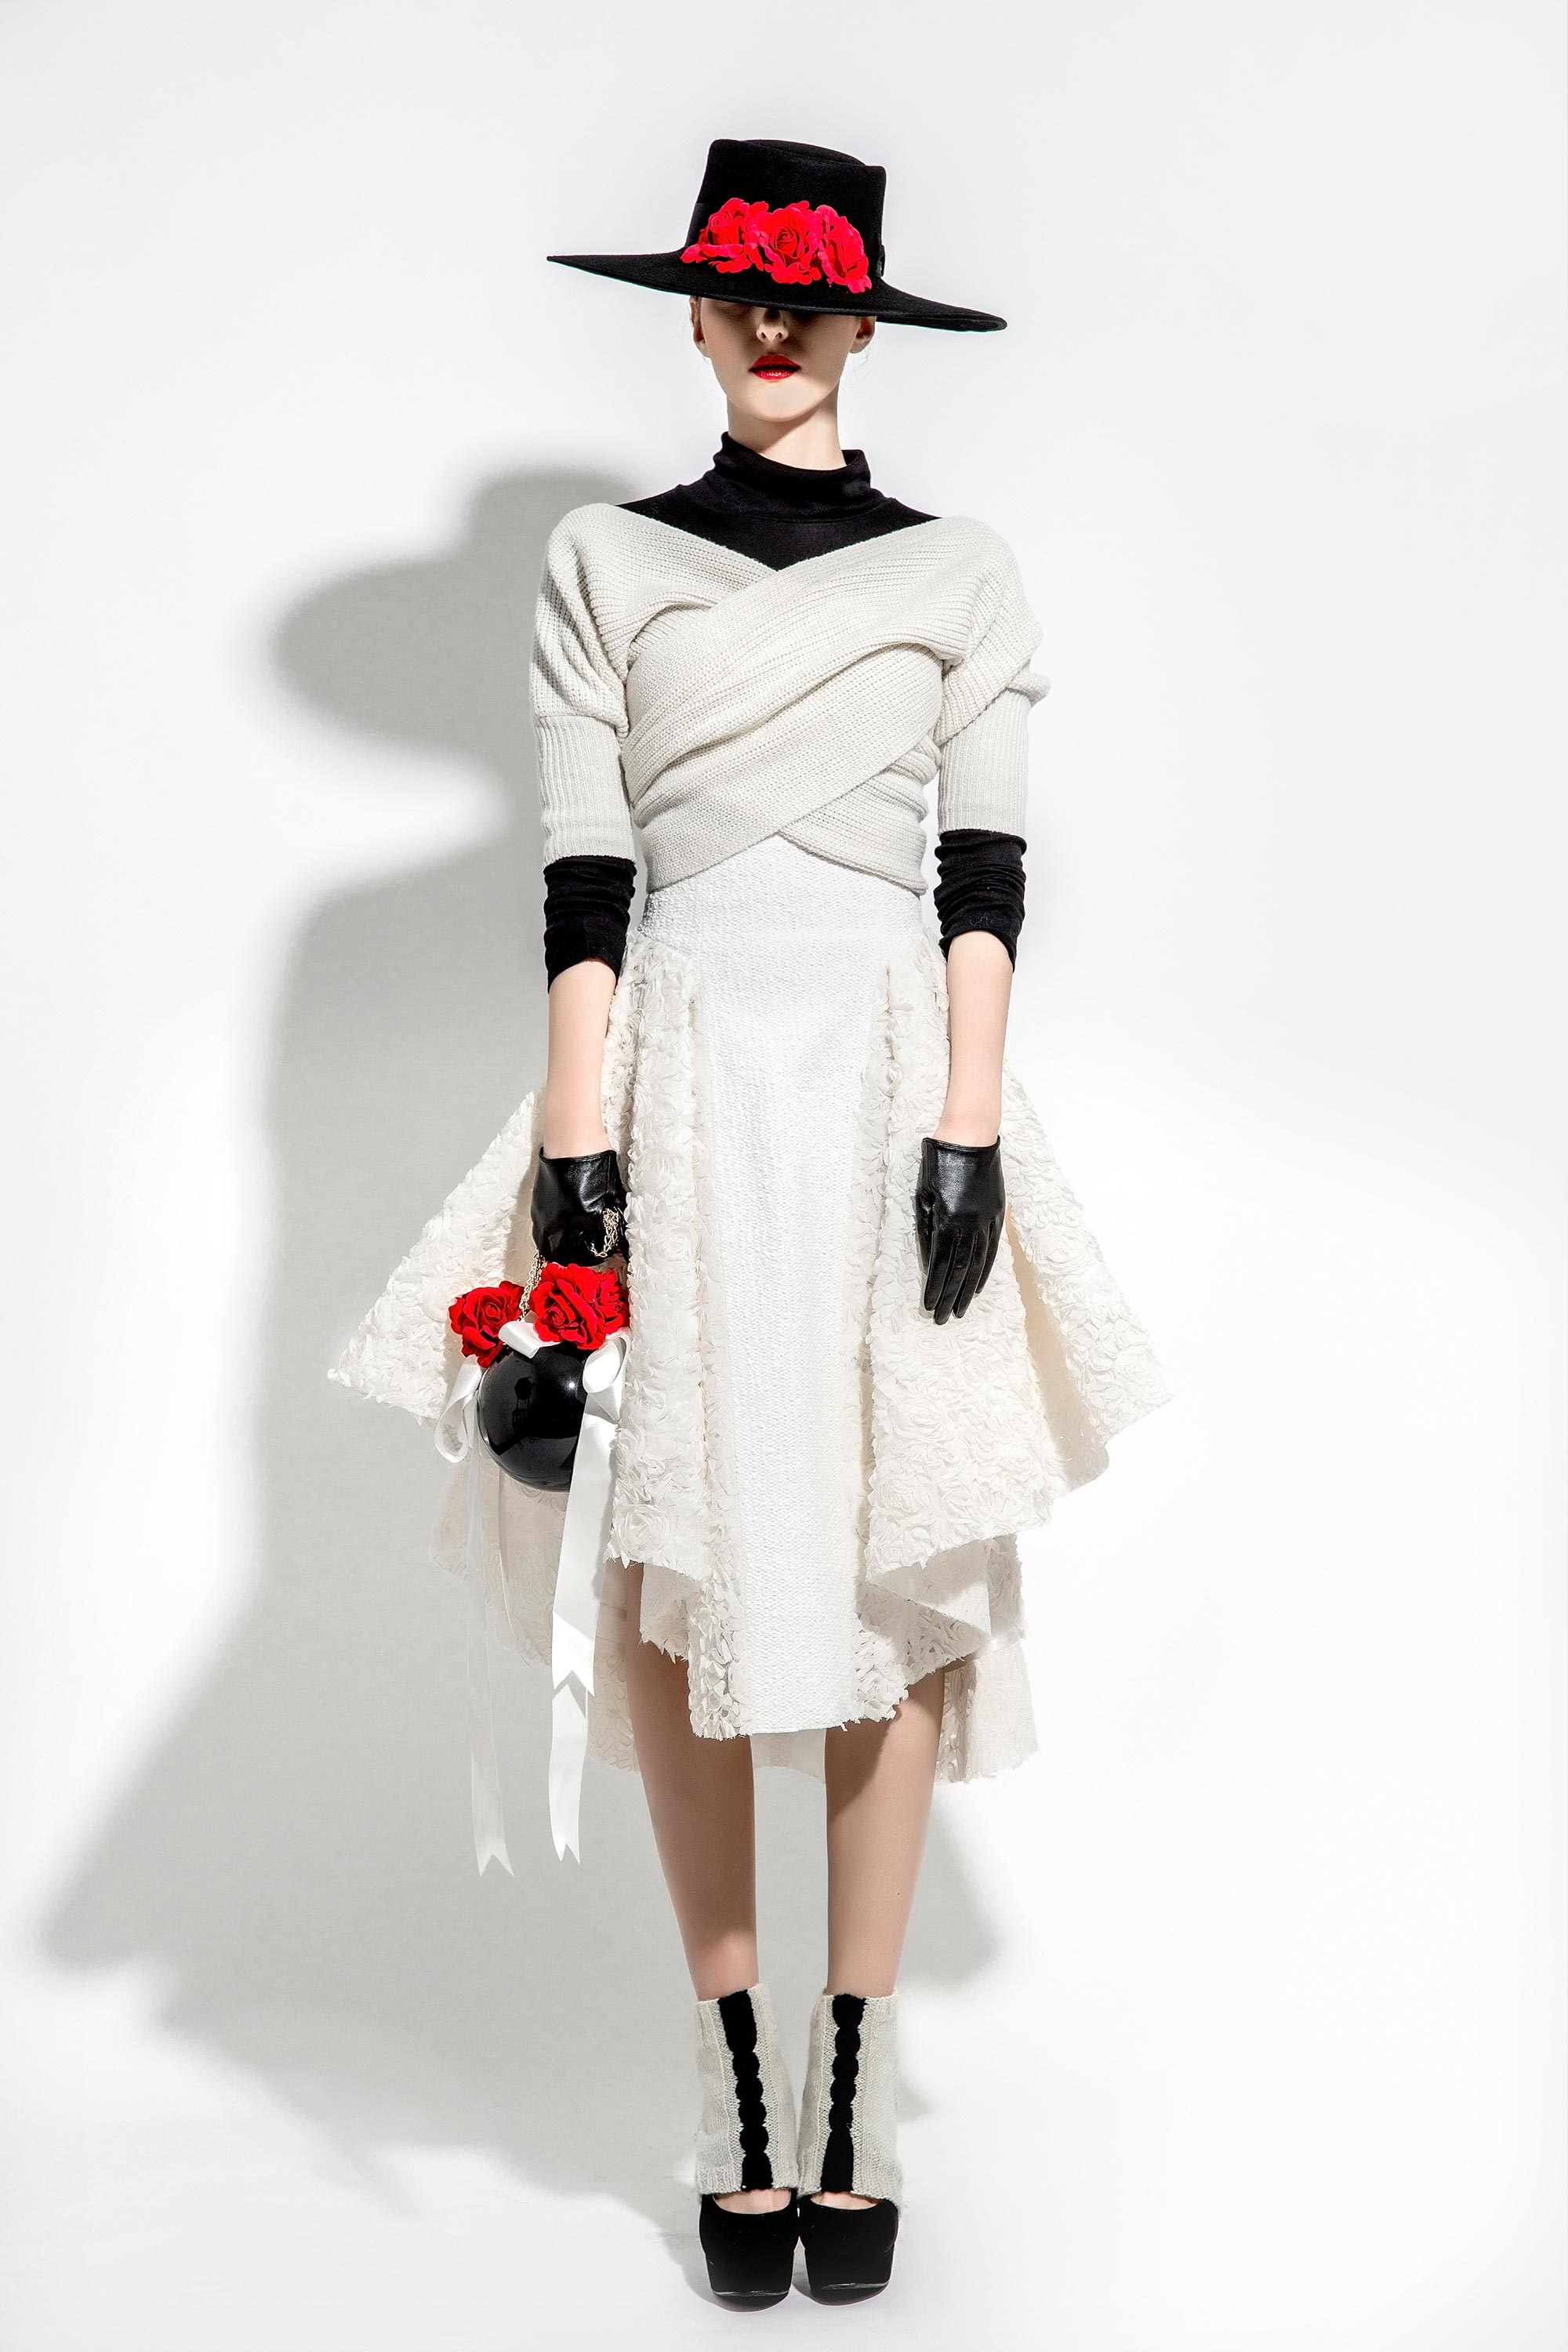 3D Rosettes Embroidered Wool Knitted Skirt and Wrapped Top, Cream